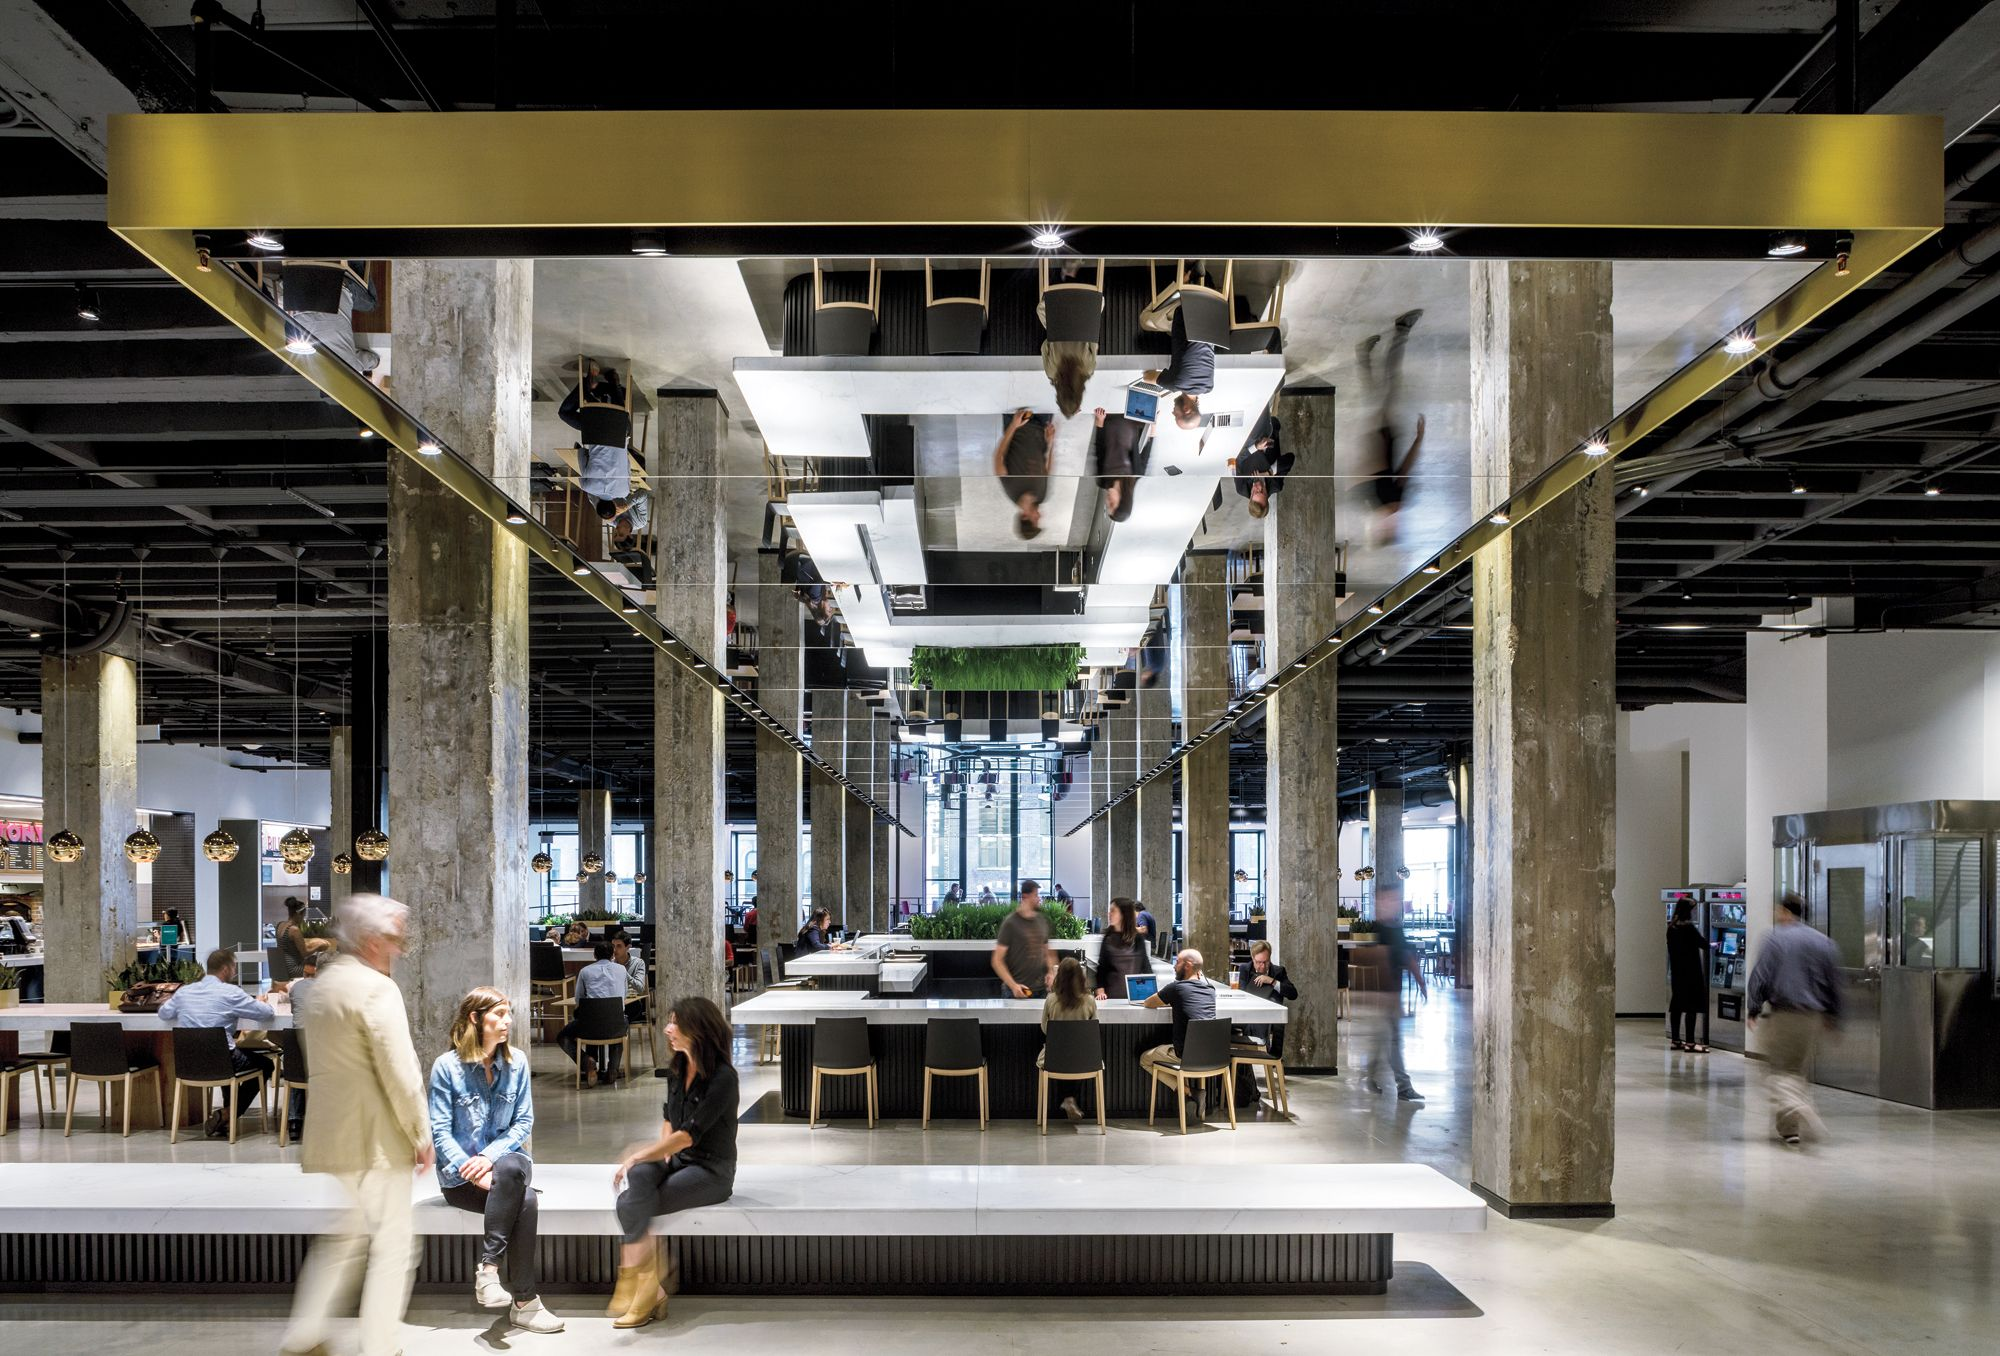 Mart food hall by a i 2016 best of year winner for - Interior design magazine best of year ...